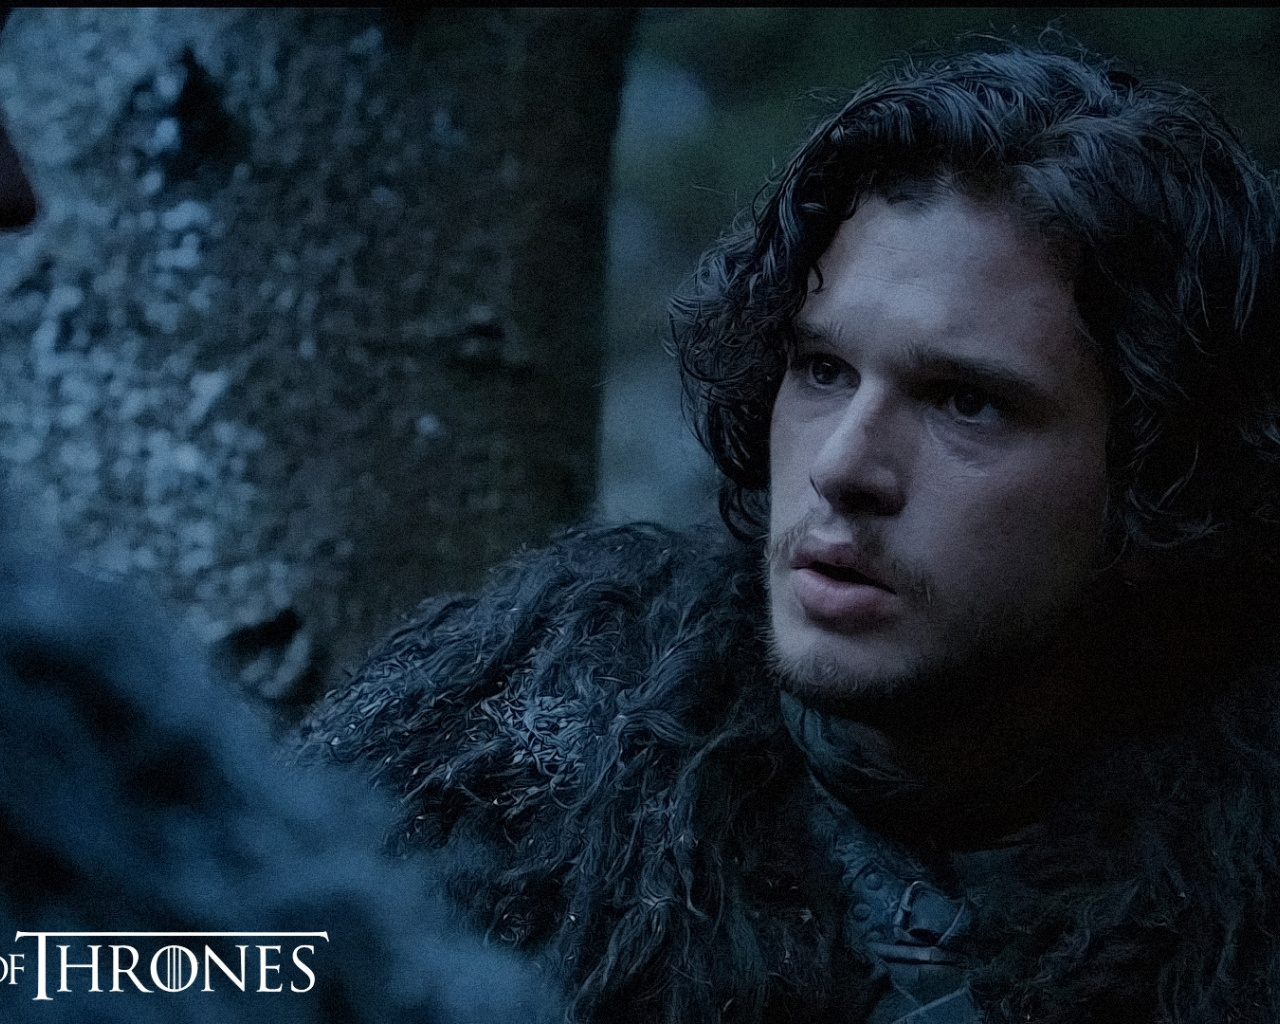 1280x1024 Jon Snow Game Of Thrones desktop PC and Mac wallpaper 1280x1024